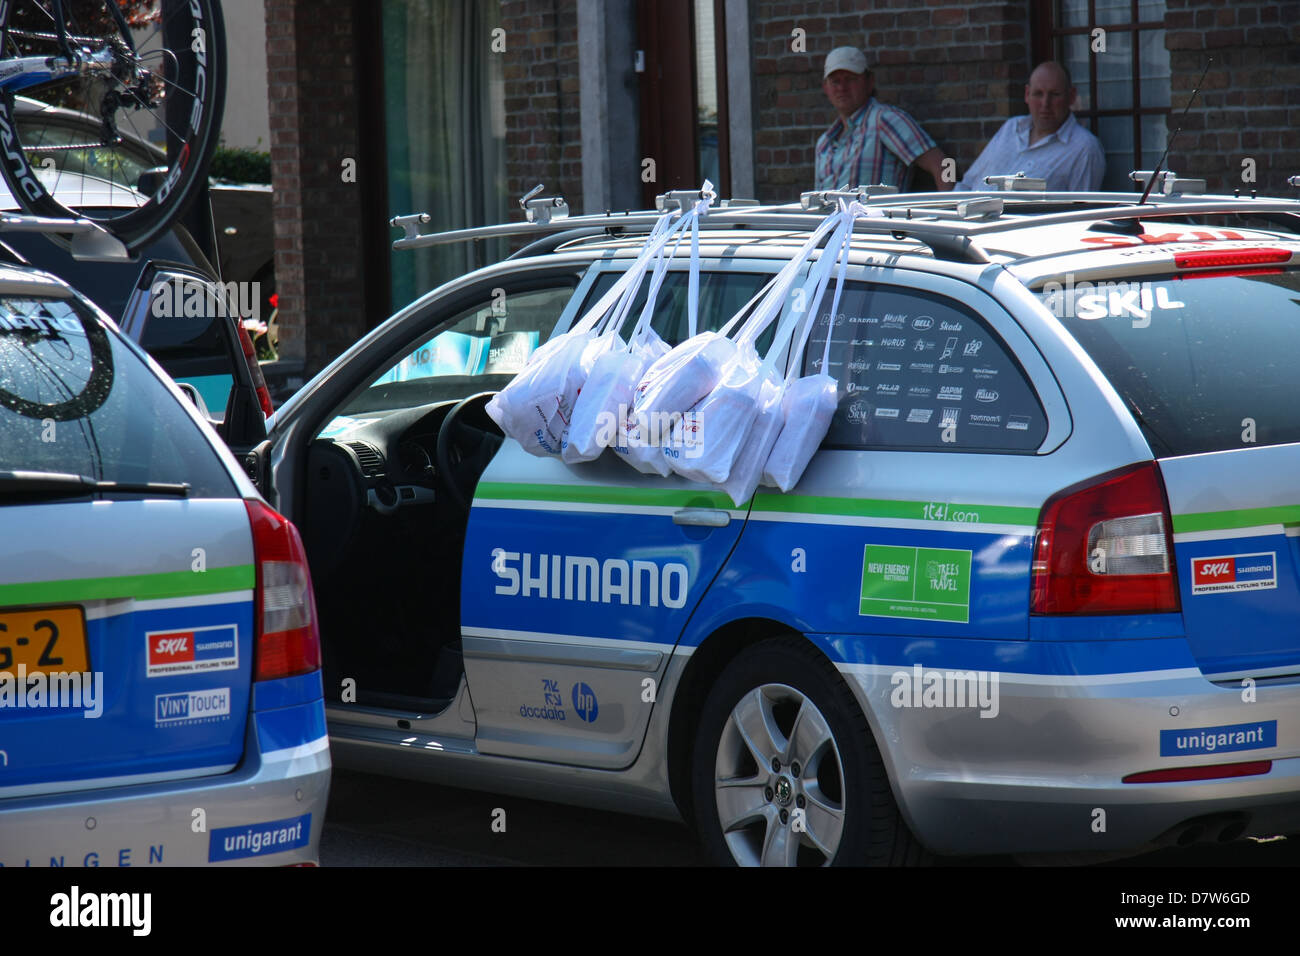 Skill Shimano team car with ravitaillement bags hanging on the door, ready for assistance to the riders. Fleche - Stock Image